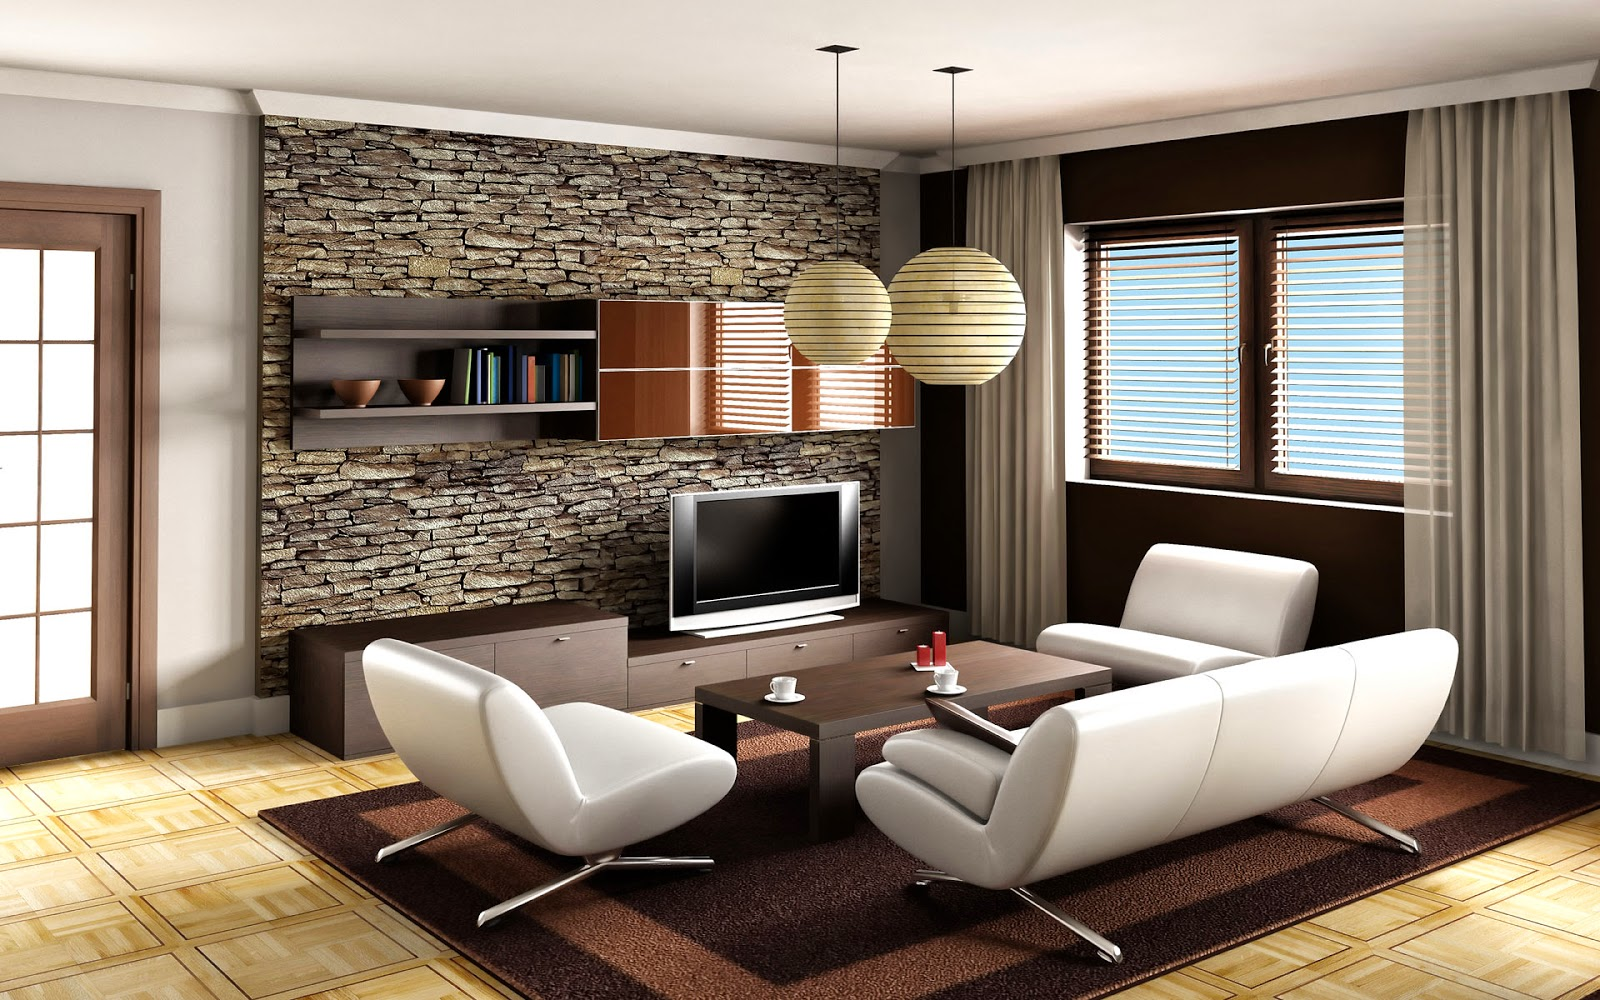 Room Decor Ideas Brown Couches Home Design Ideas On Your Desktop